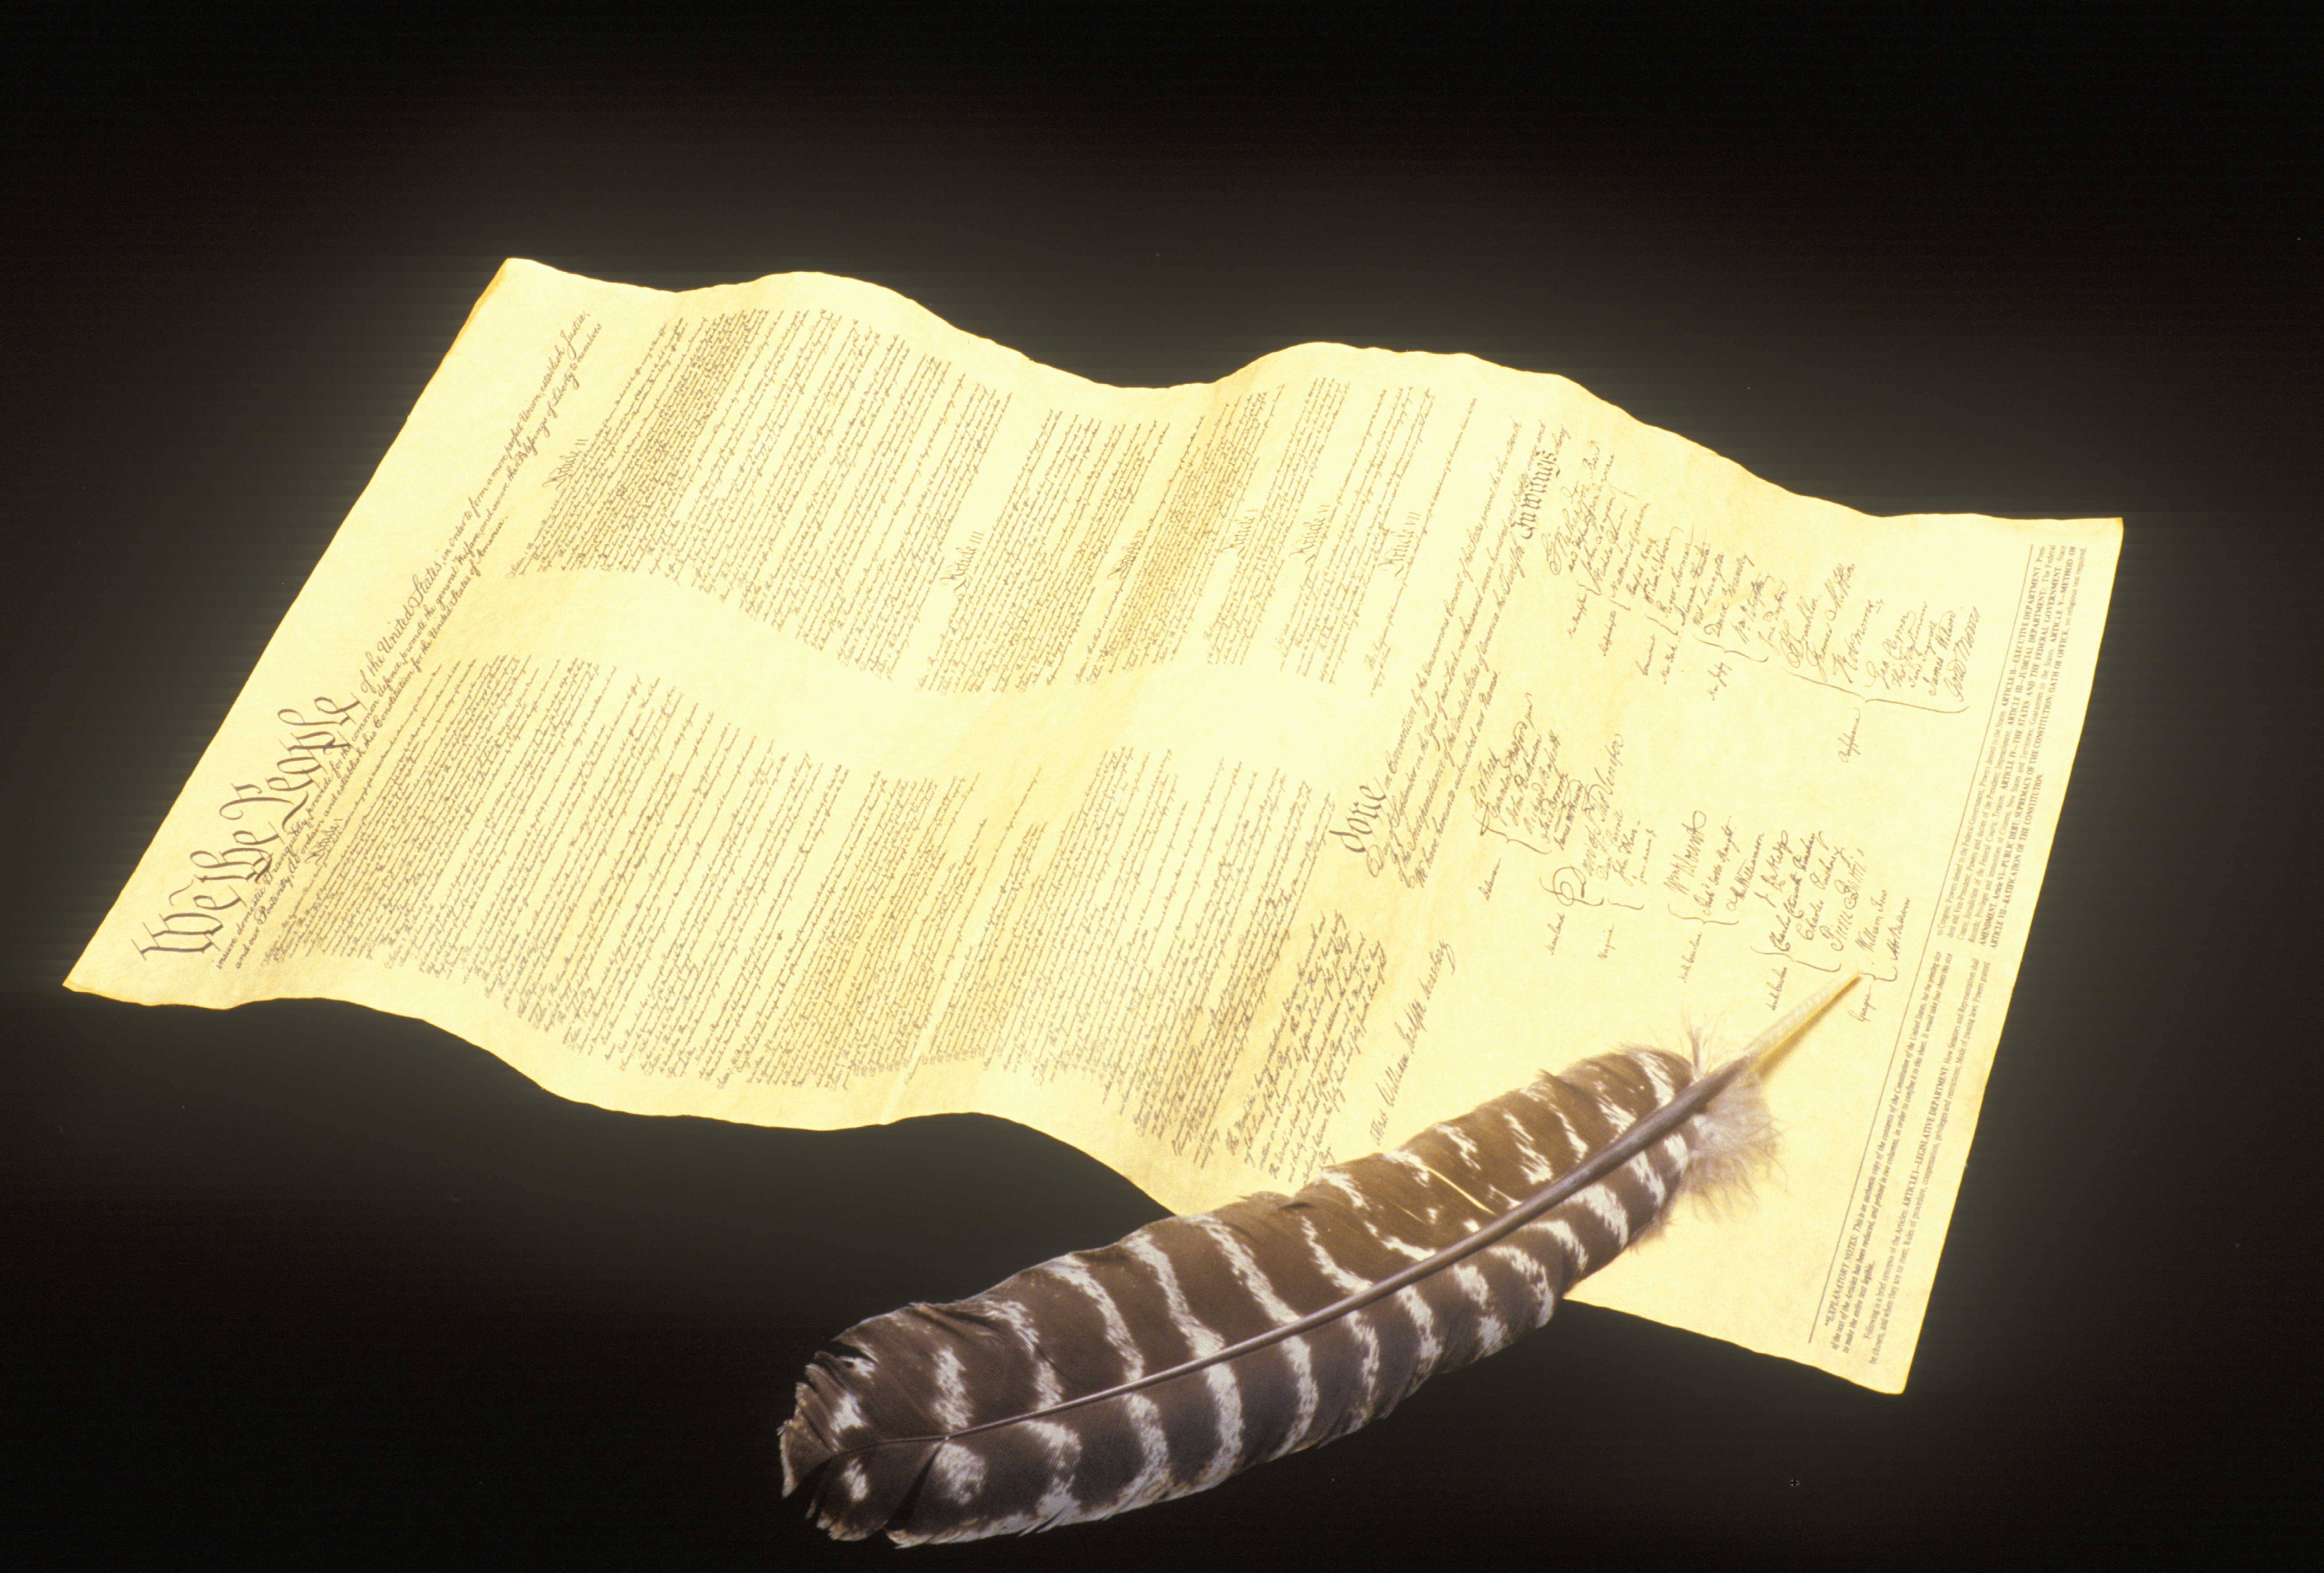 Quill pen with replica of Declaration of Independence